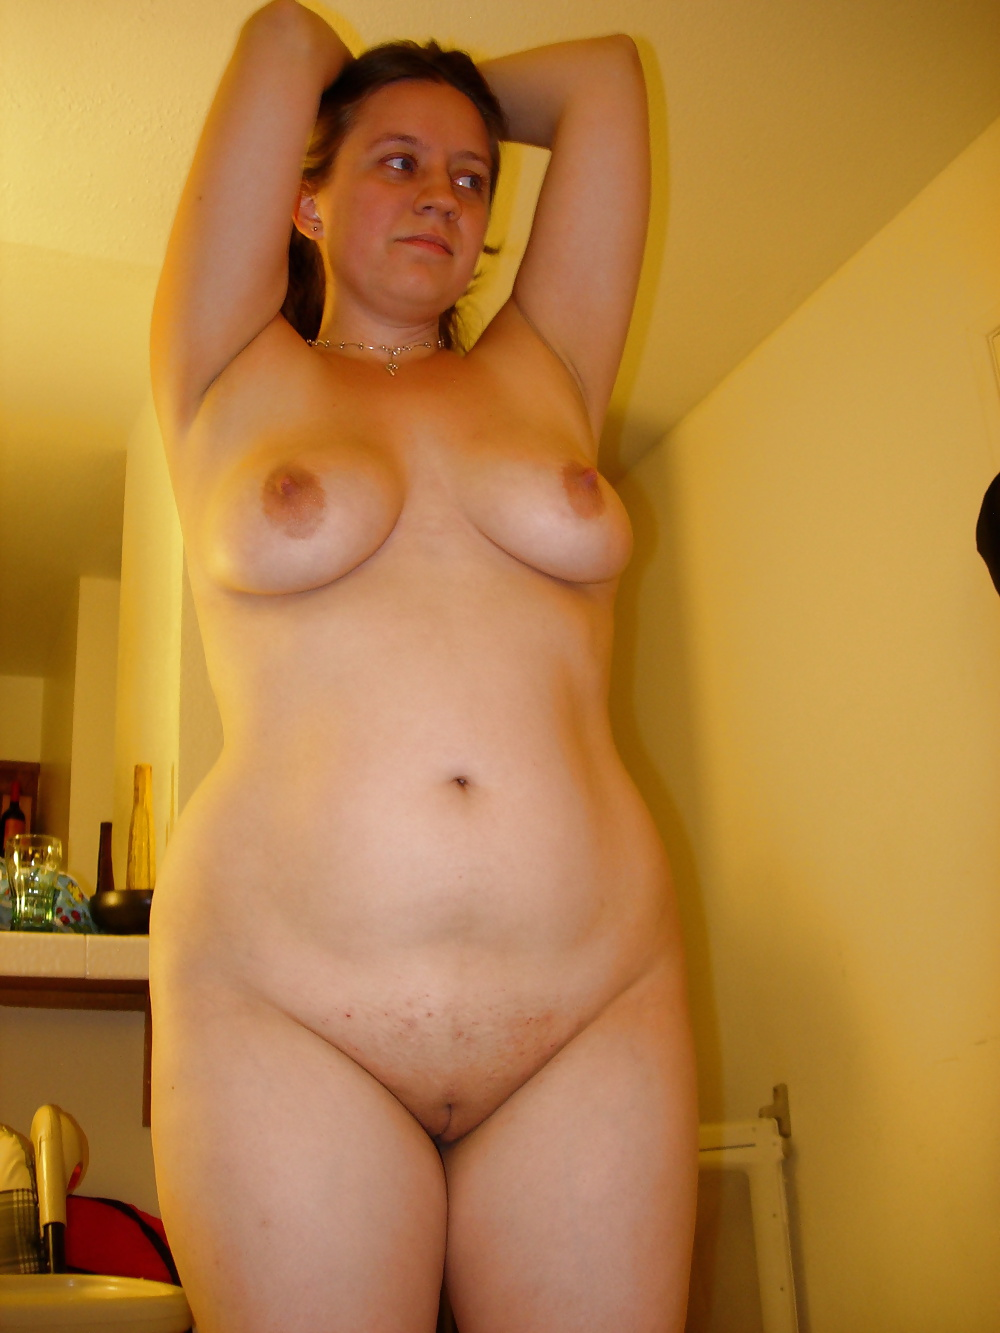 Chubby hot girls naked — 11